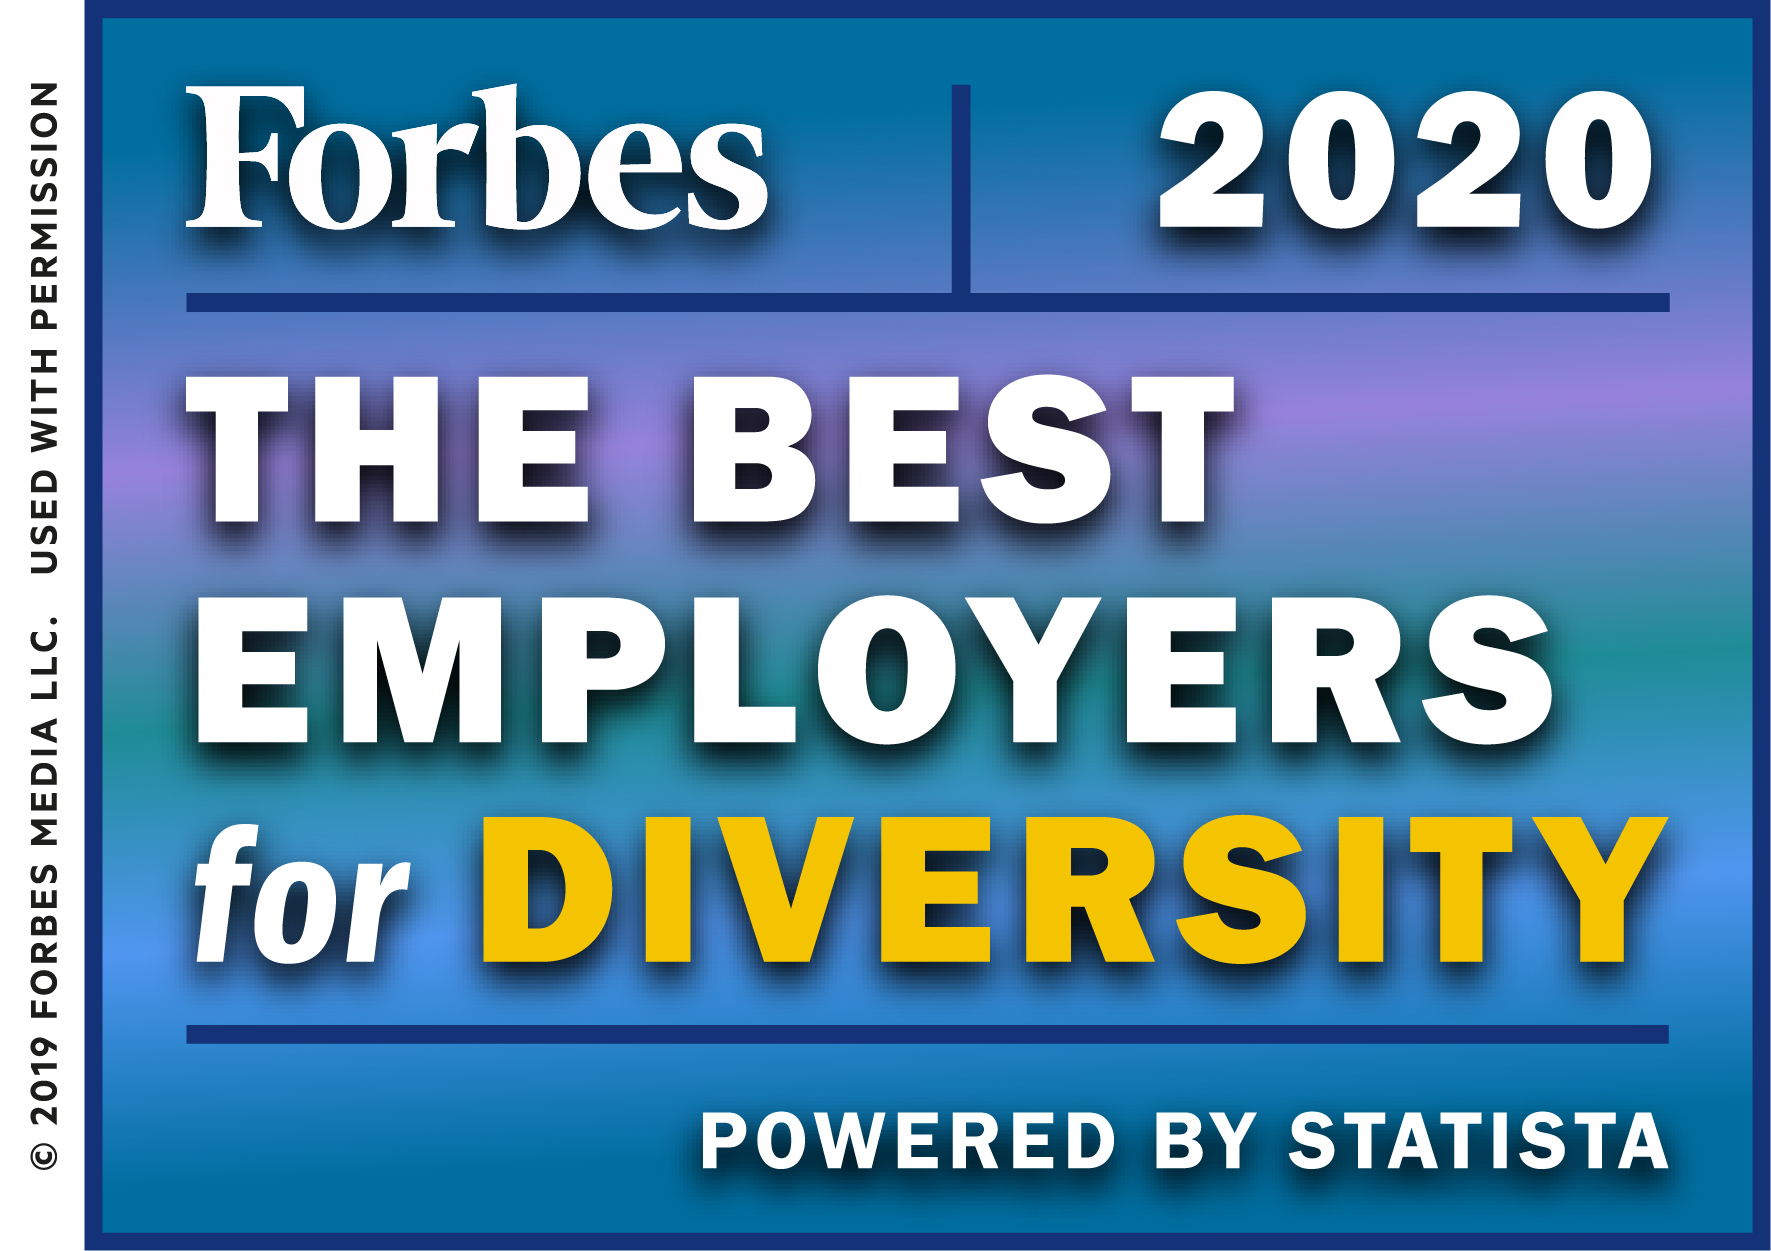 Forbes 2020: The Best Employers for Diversity